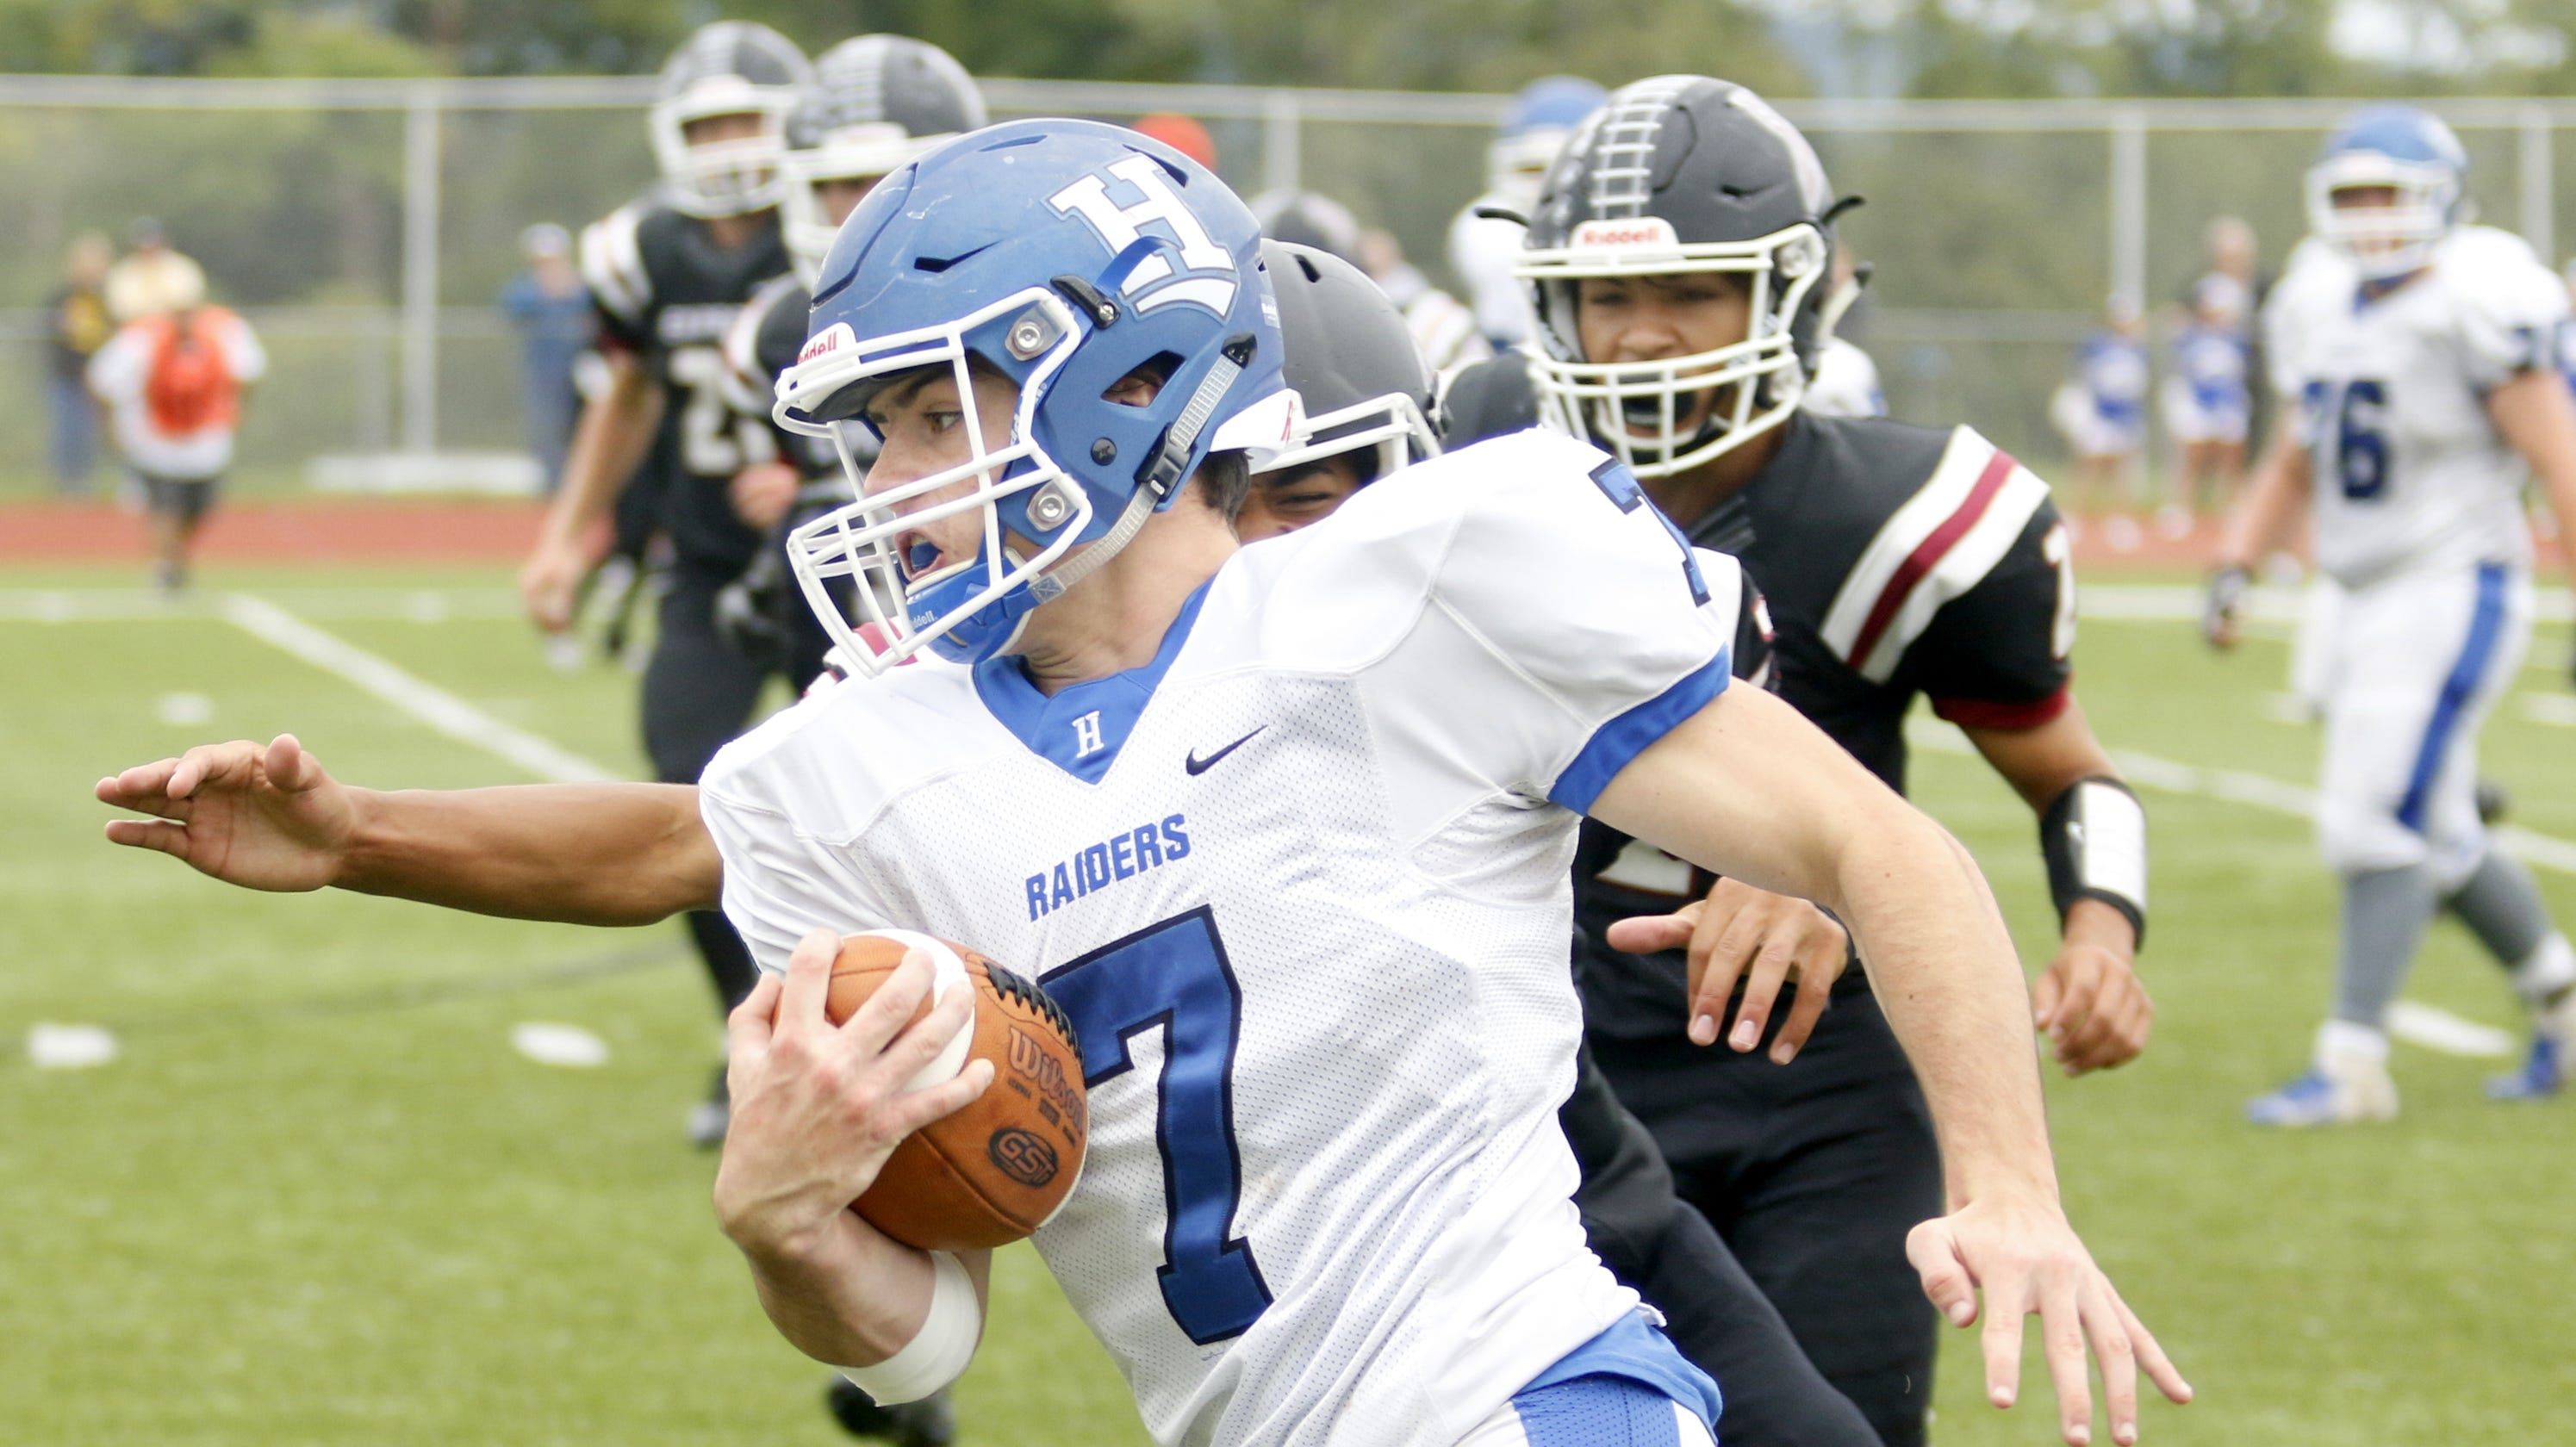 HIGH SCHOOL RANKINGS: Who are top football teams in Section 4?